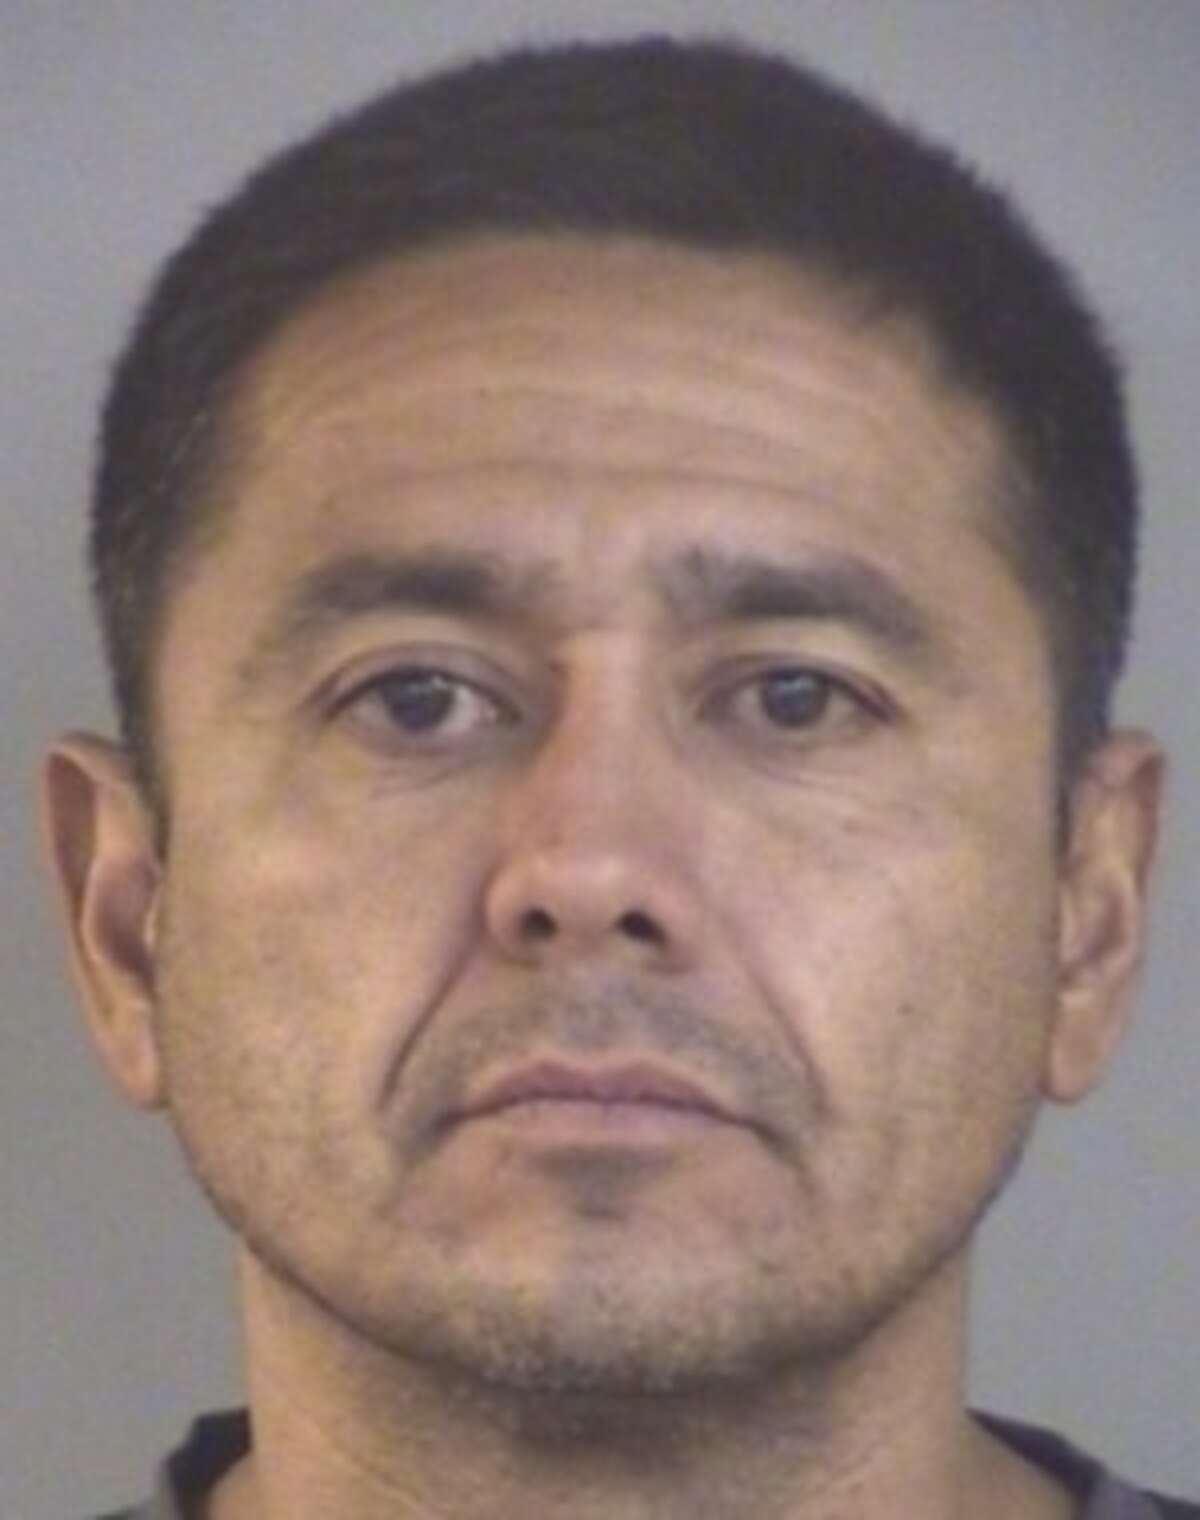 Ramon Mendoza Jr., 45, is wanted for vehicle theft, engaging in organized criminal activity, theft of property and conspiracy to commit theft of property.